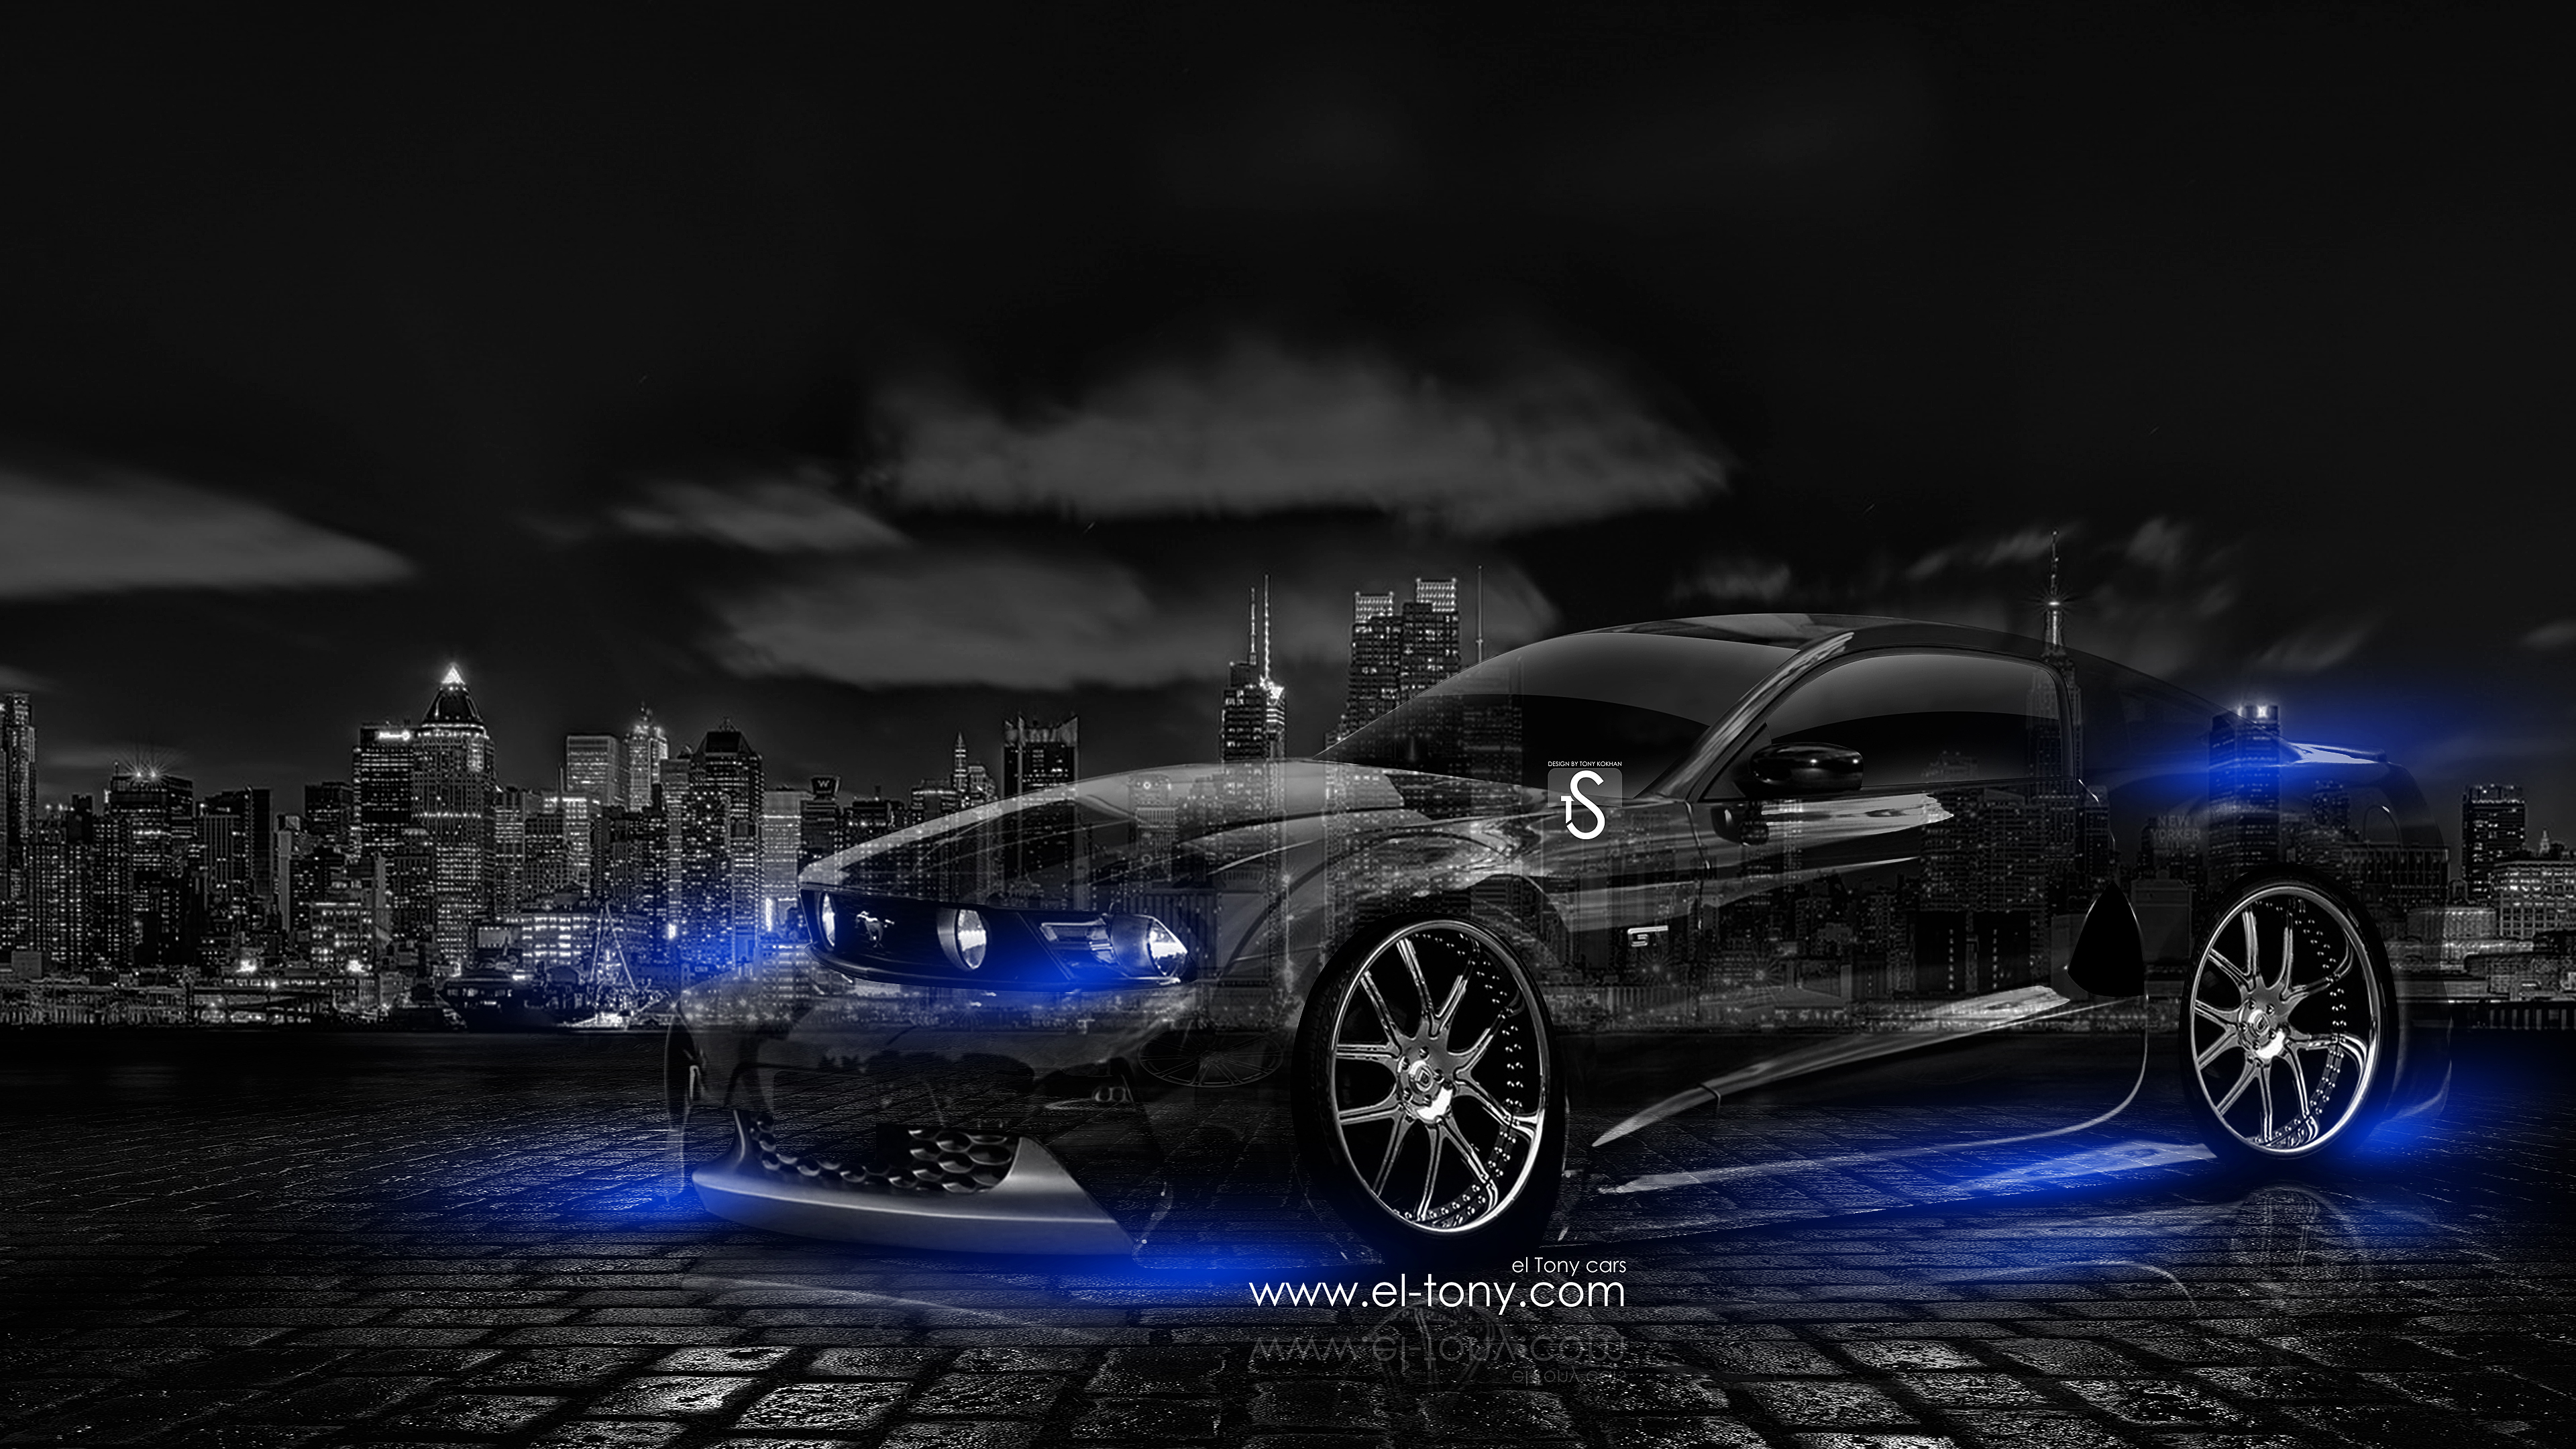 Ford Mustang GT Muscle Crystal City Car 2014